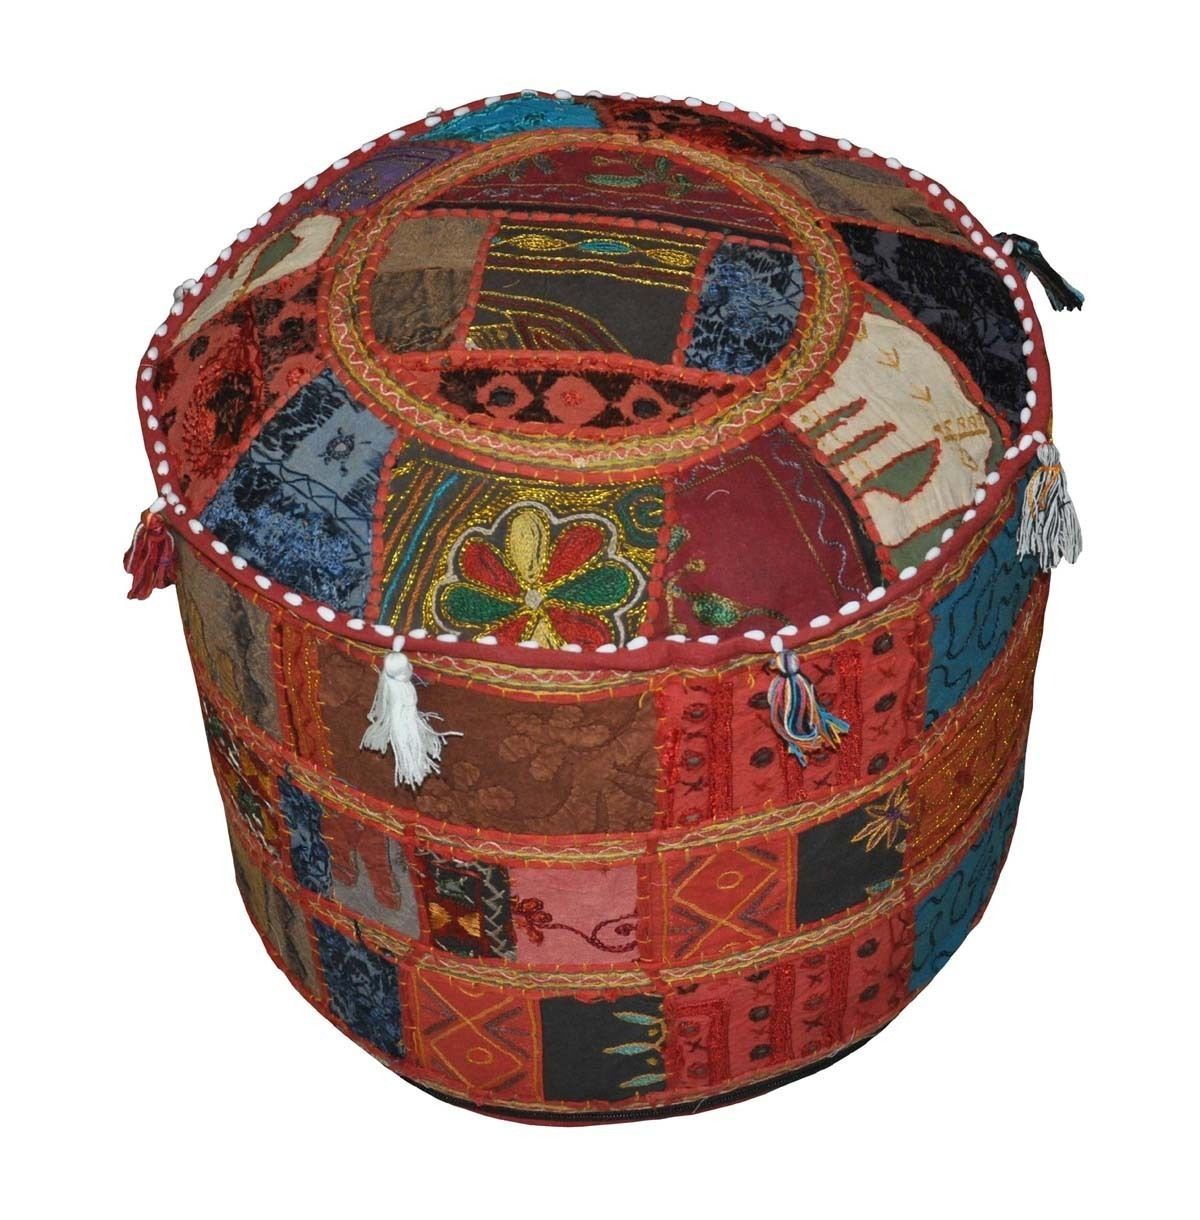 Ethnic Indian Decorative Ottoman Stool Embroidery